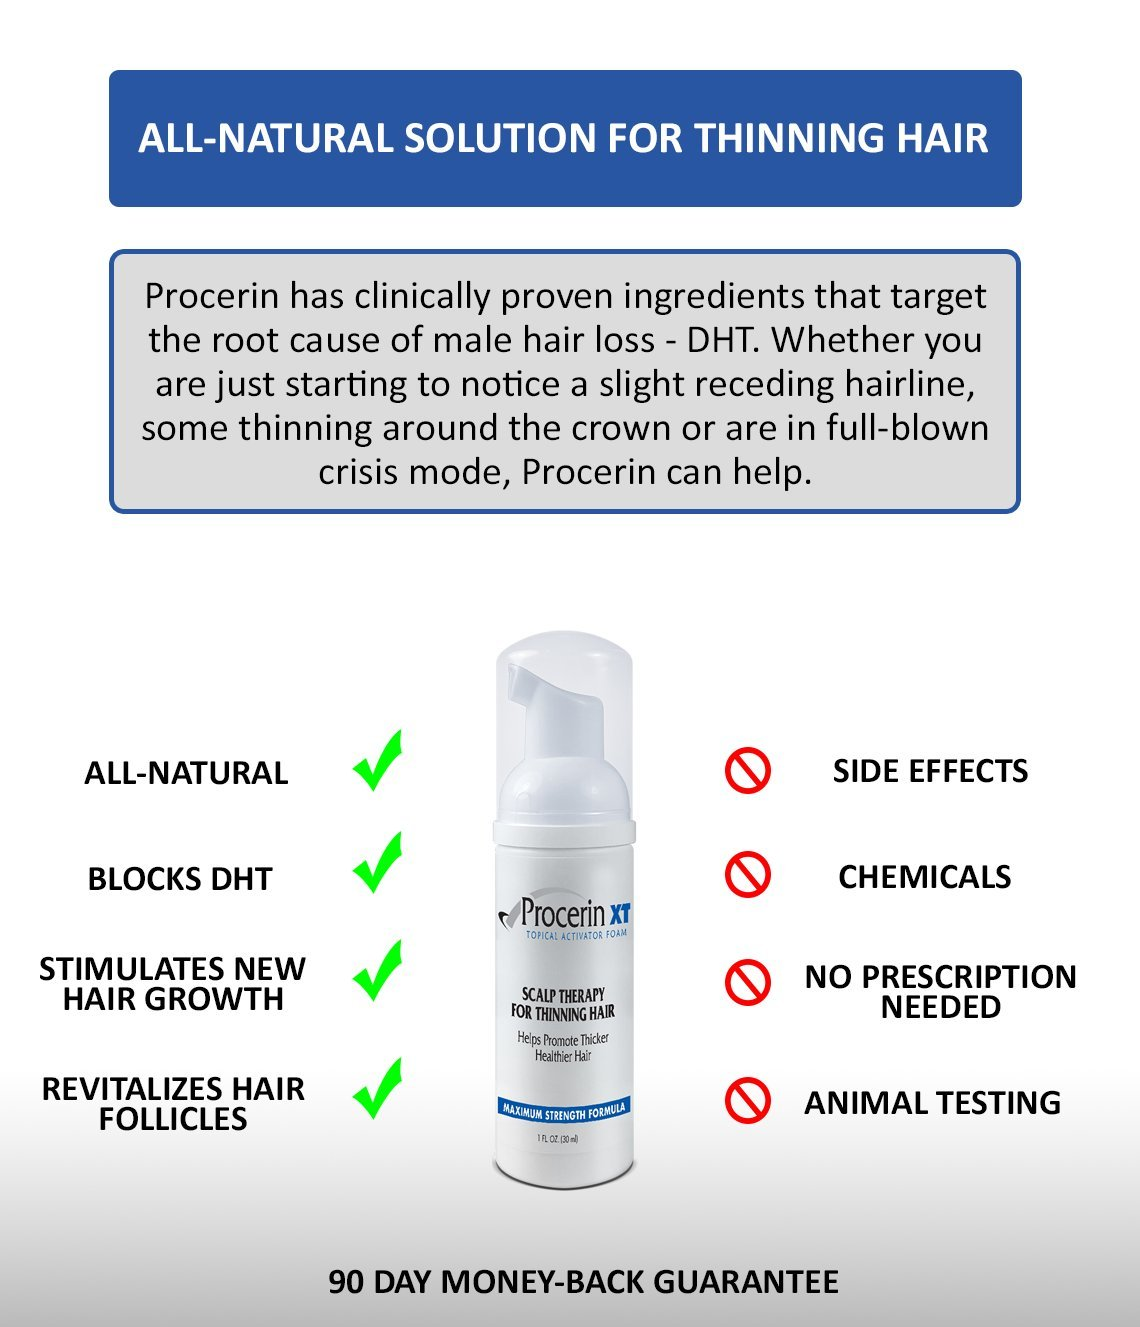 Procerin XT Foam Hair Loss Foam Product (No Minoxidil) - Clinically Proven to Combat Baldness & Thinning Hair by Procerin (Image #4)